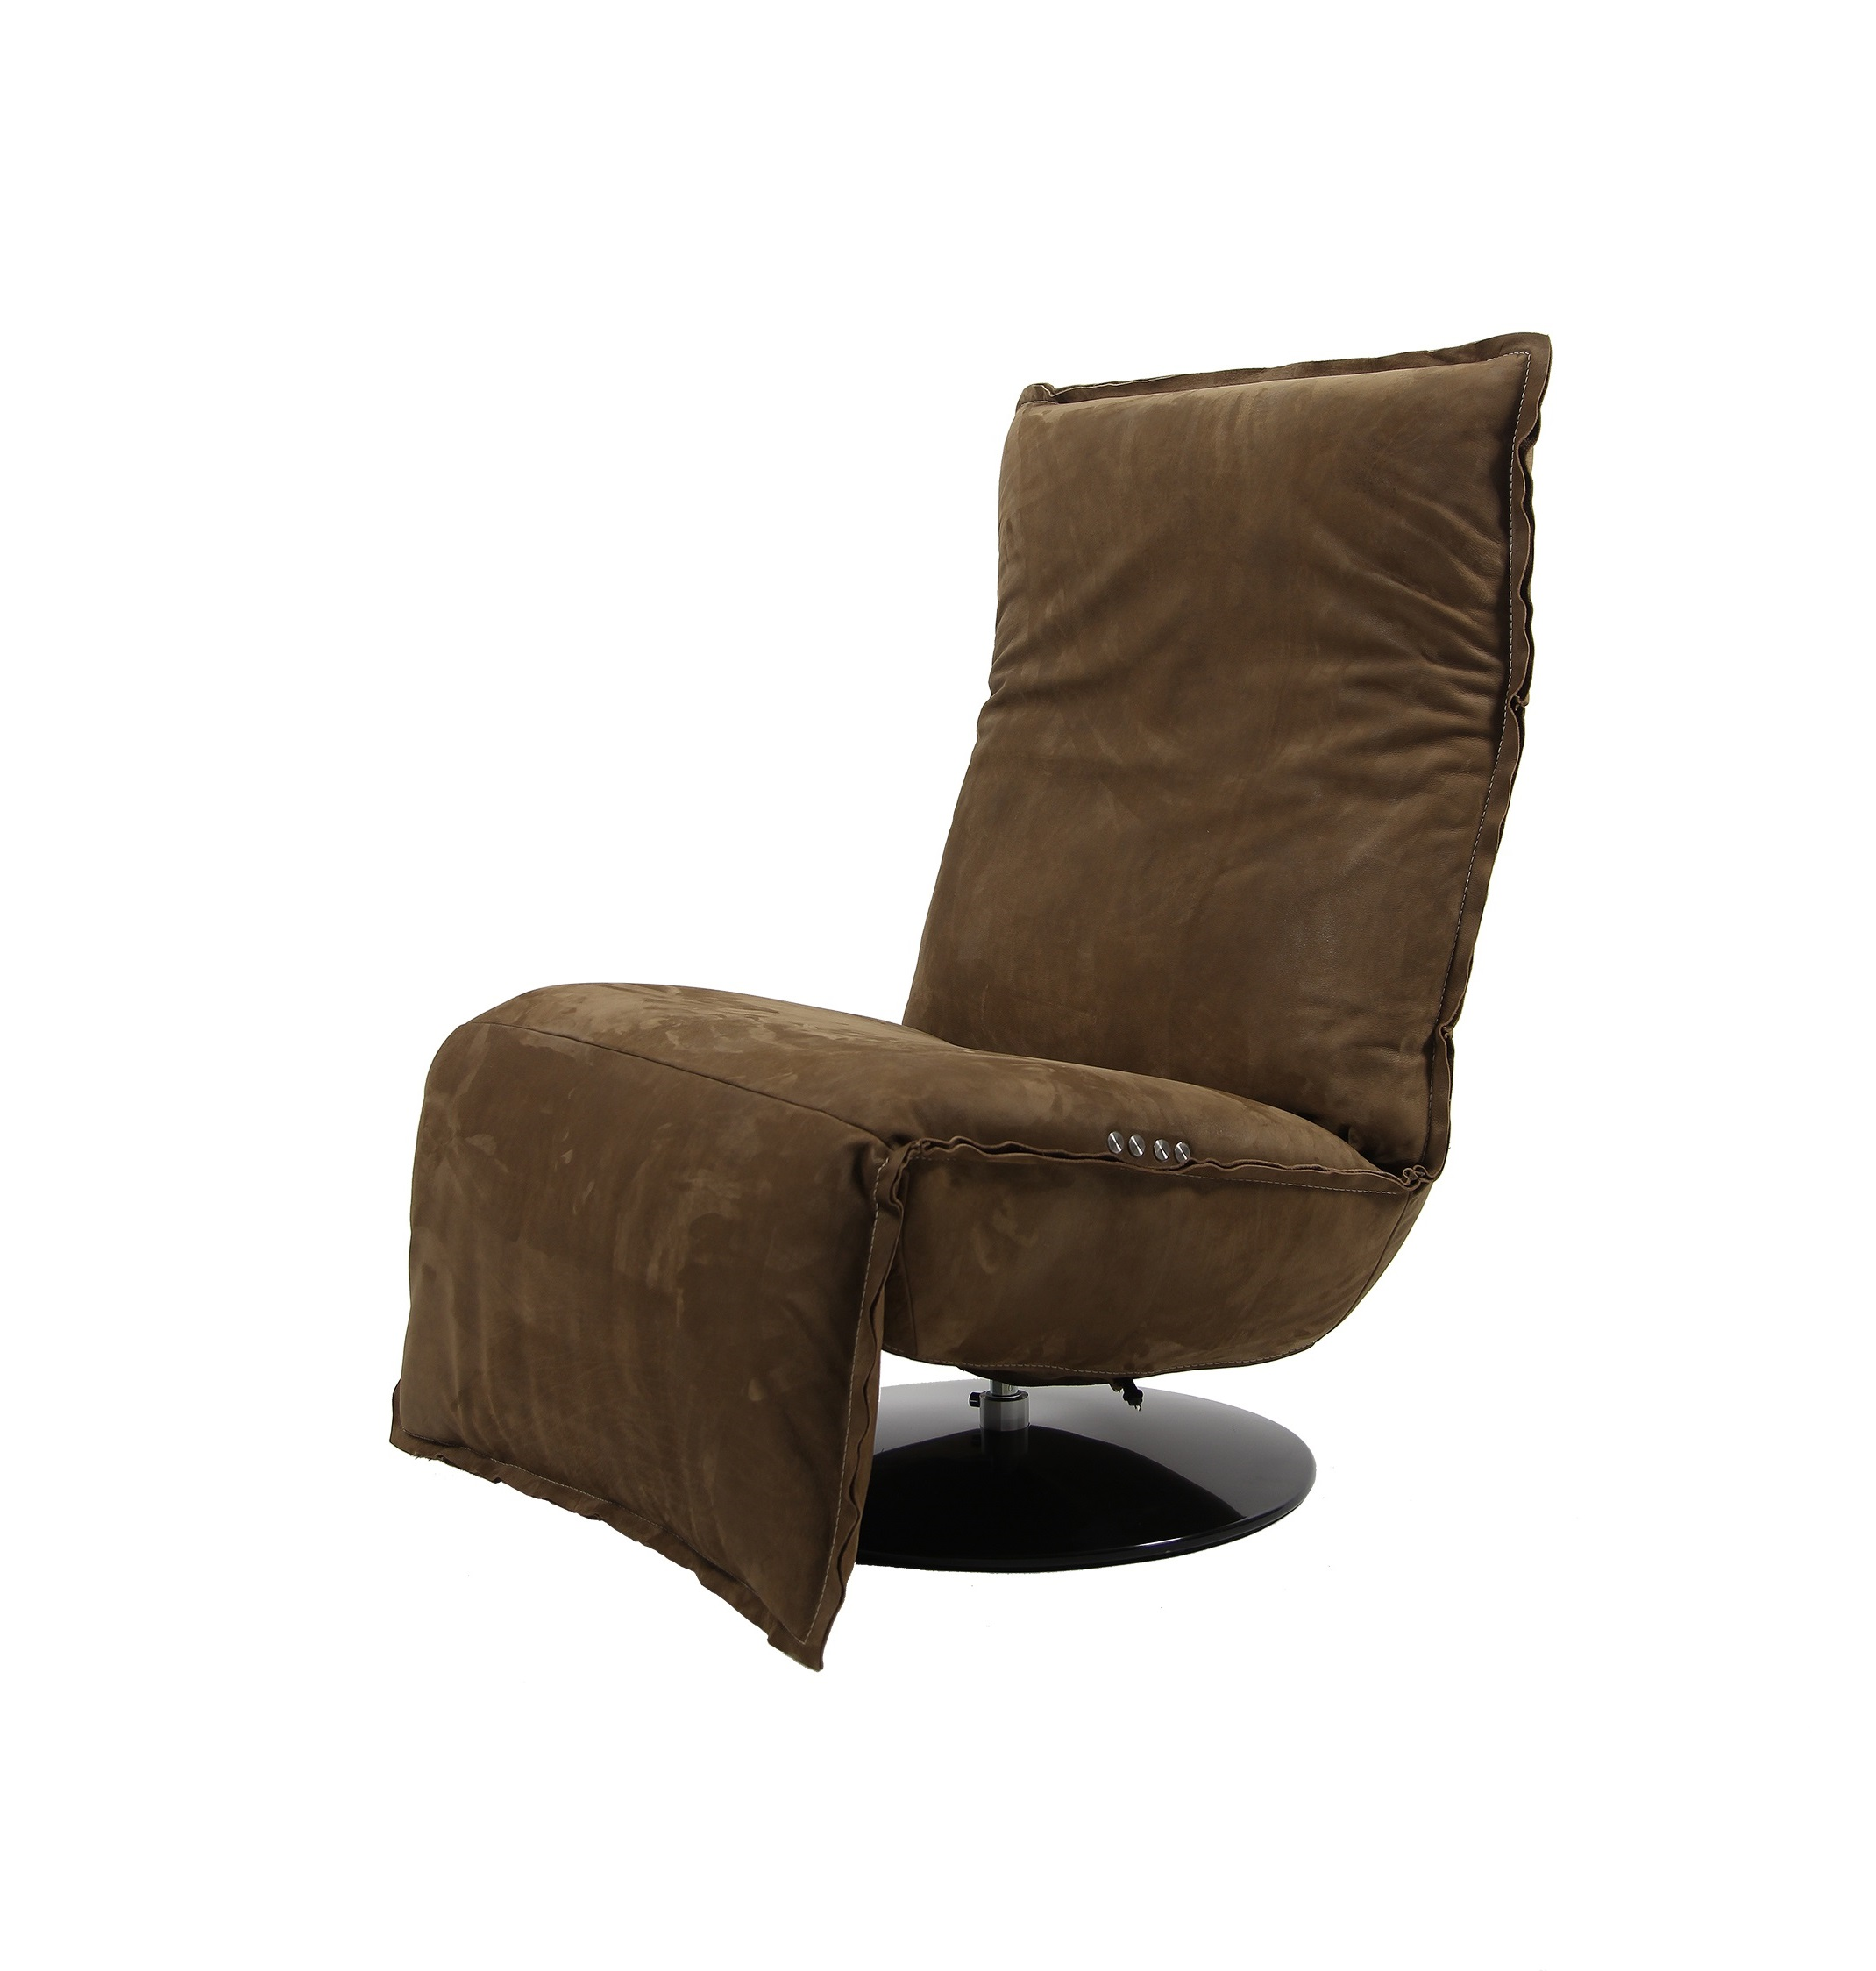 indi-relaxfauteuil